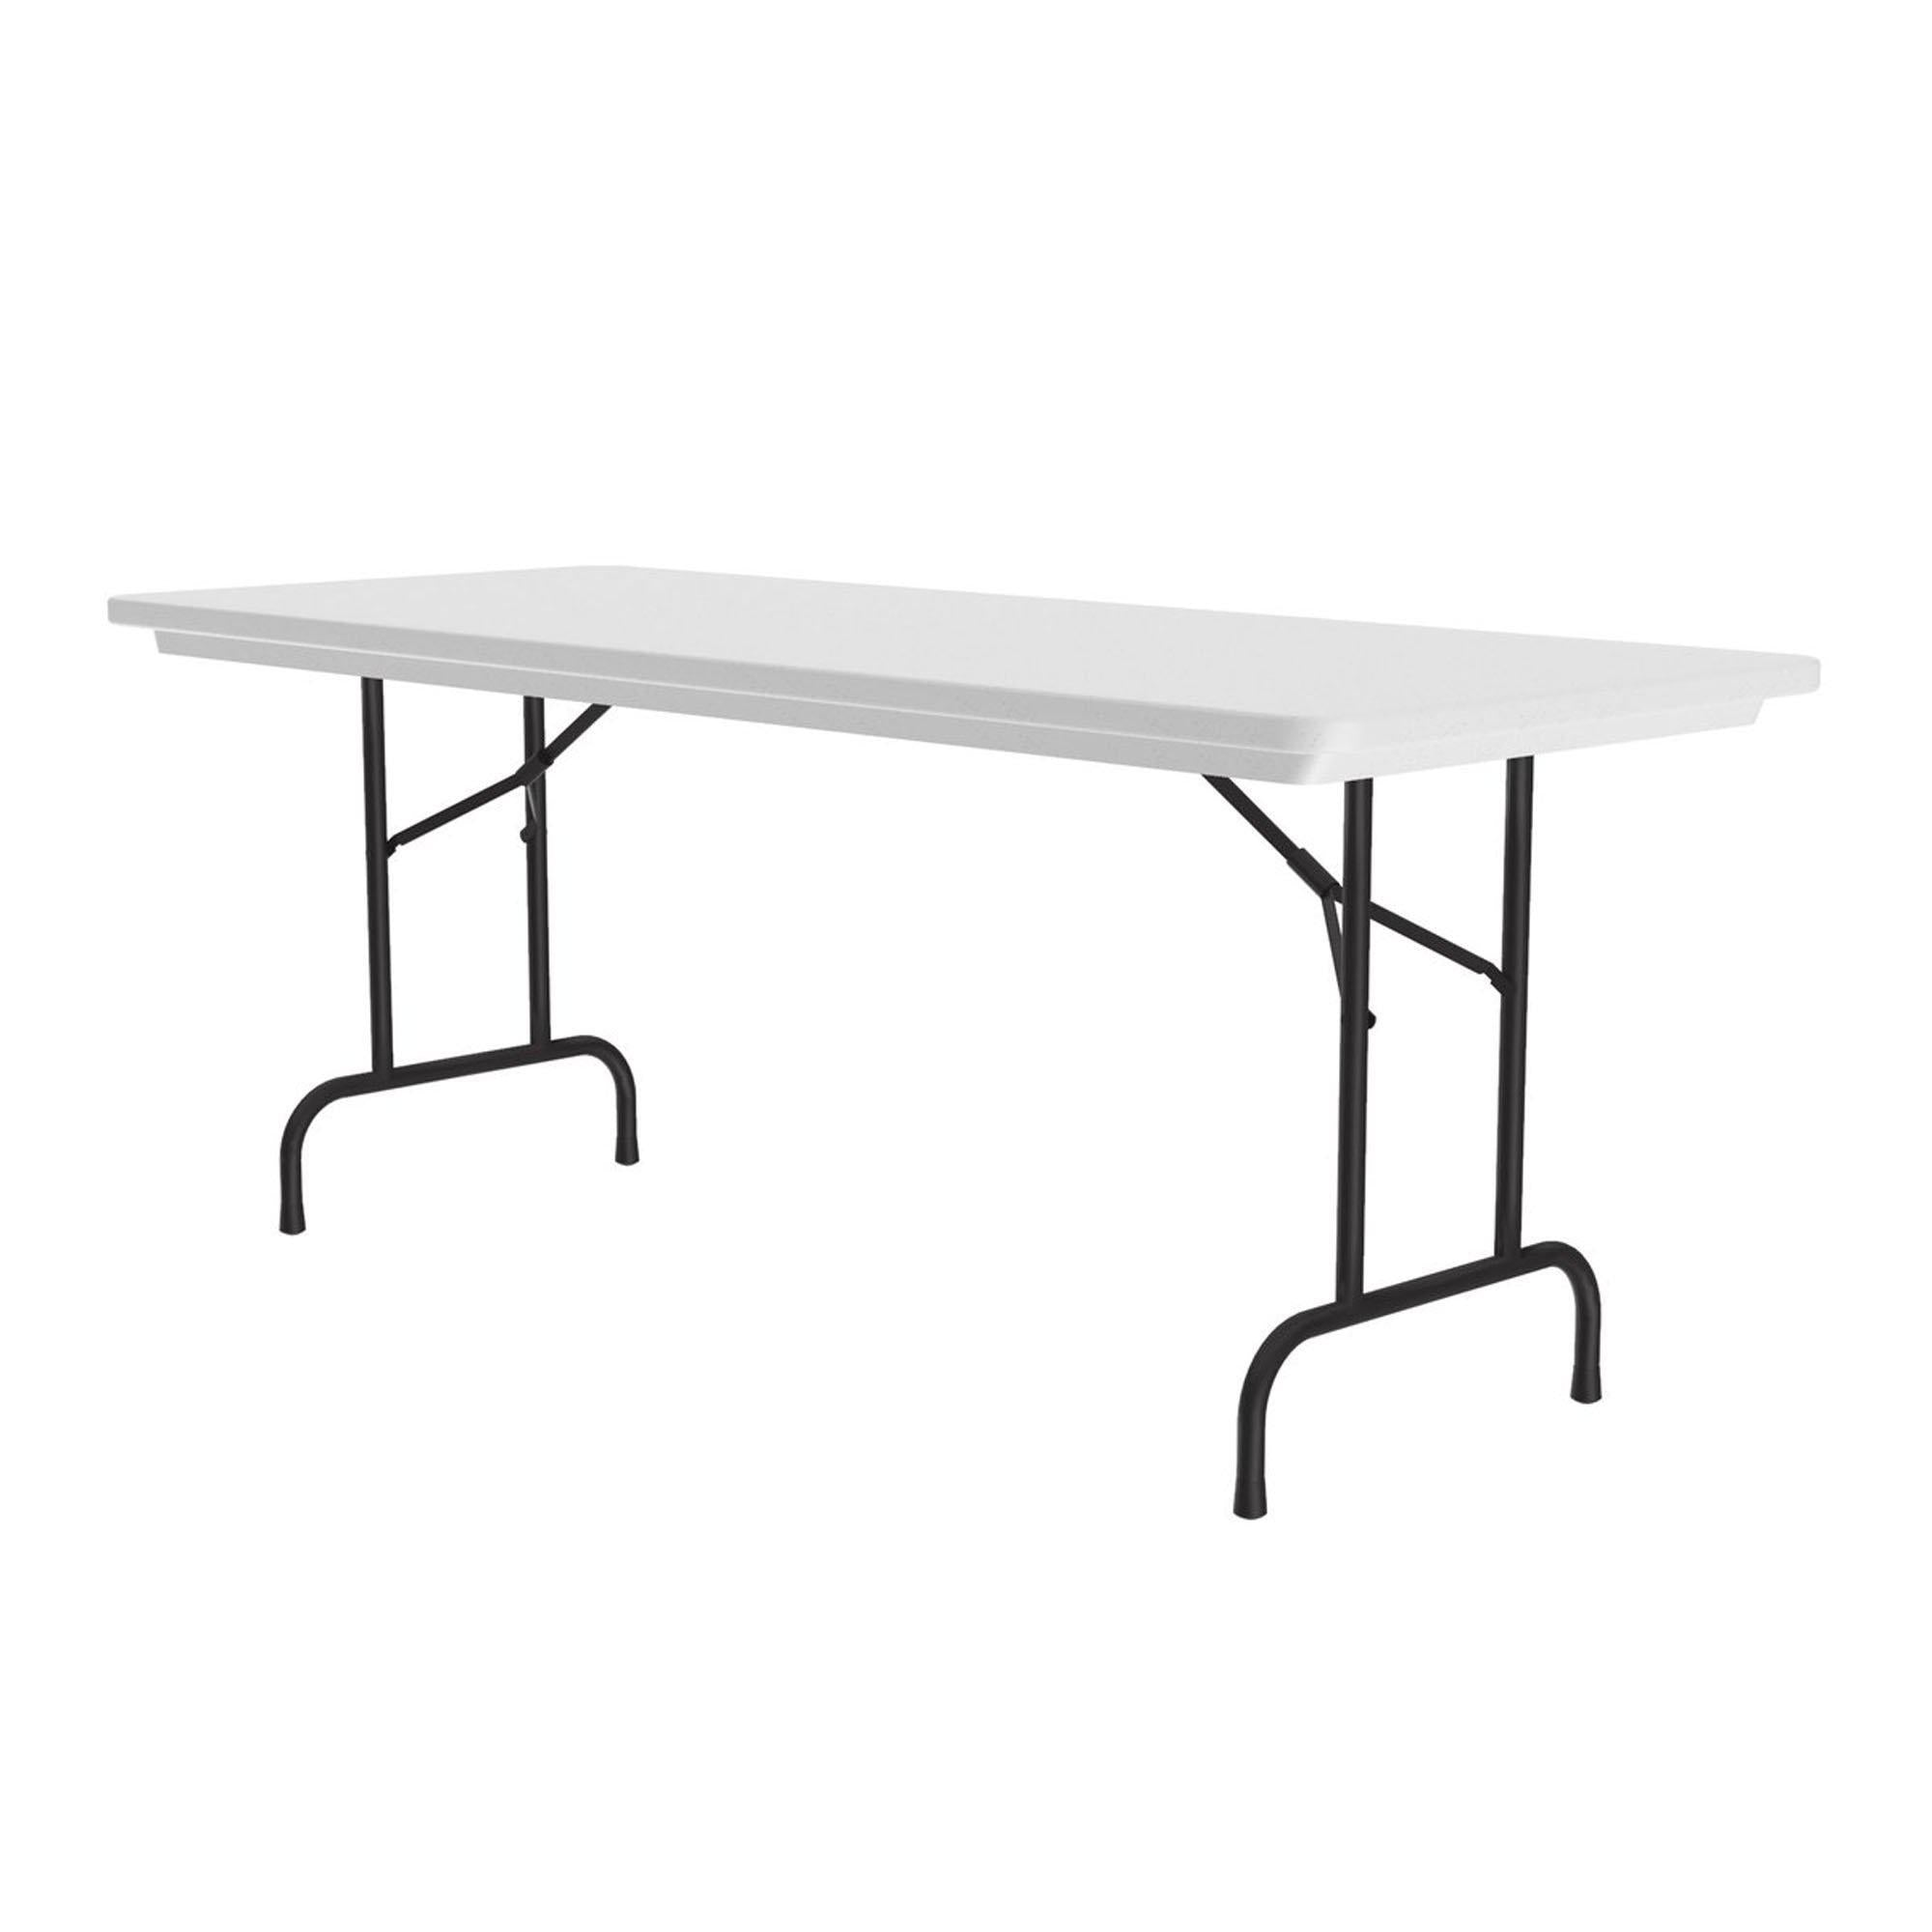 "Sanitation Station Antimicrobial Plastic  Folding Table, 29"" Fixed Height"